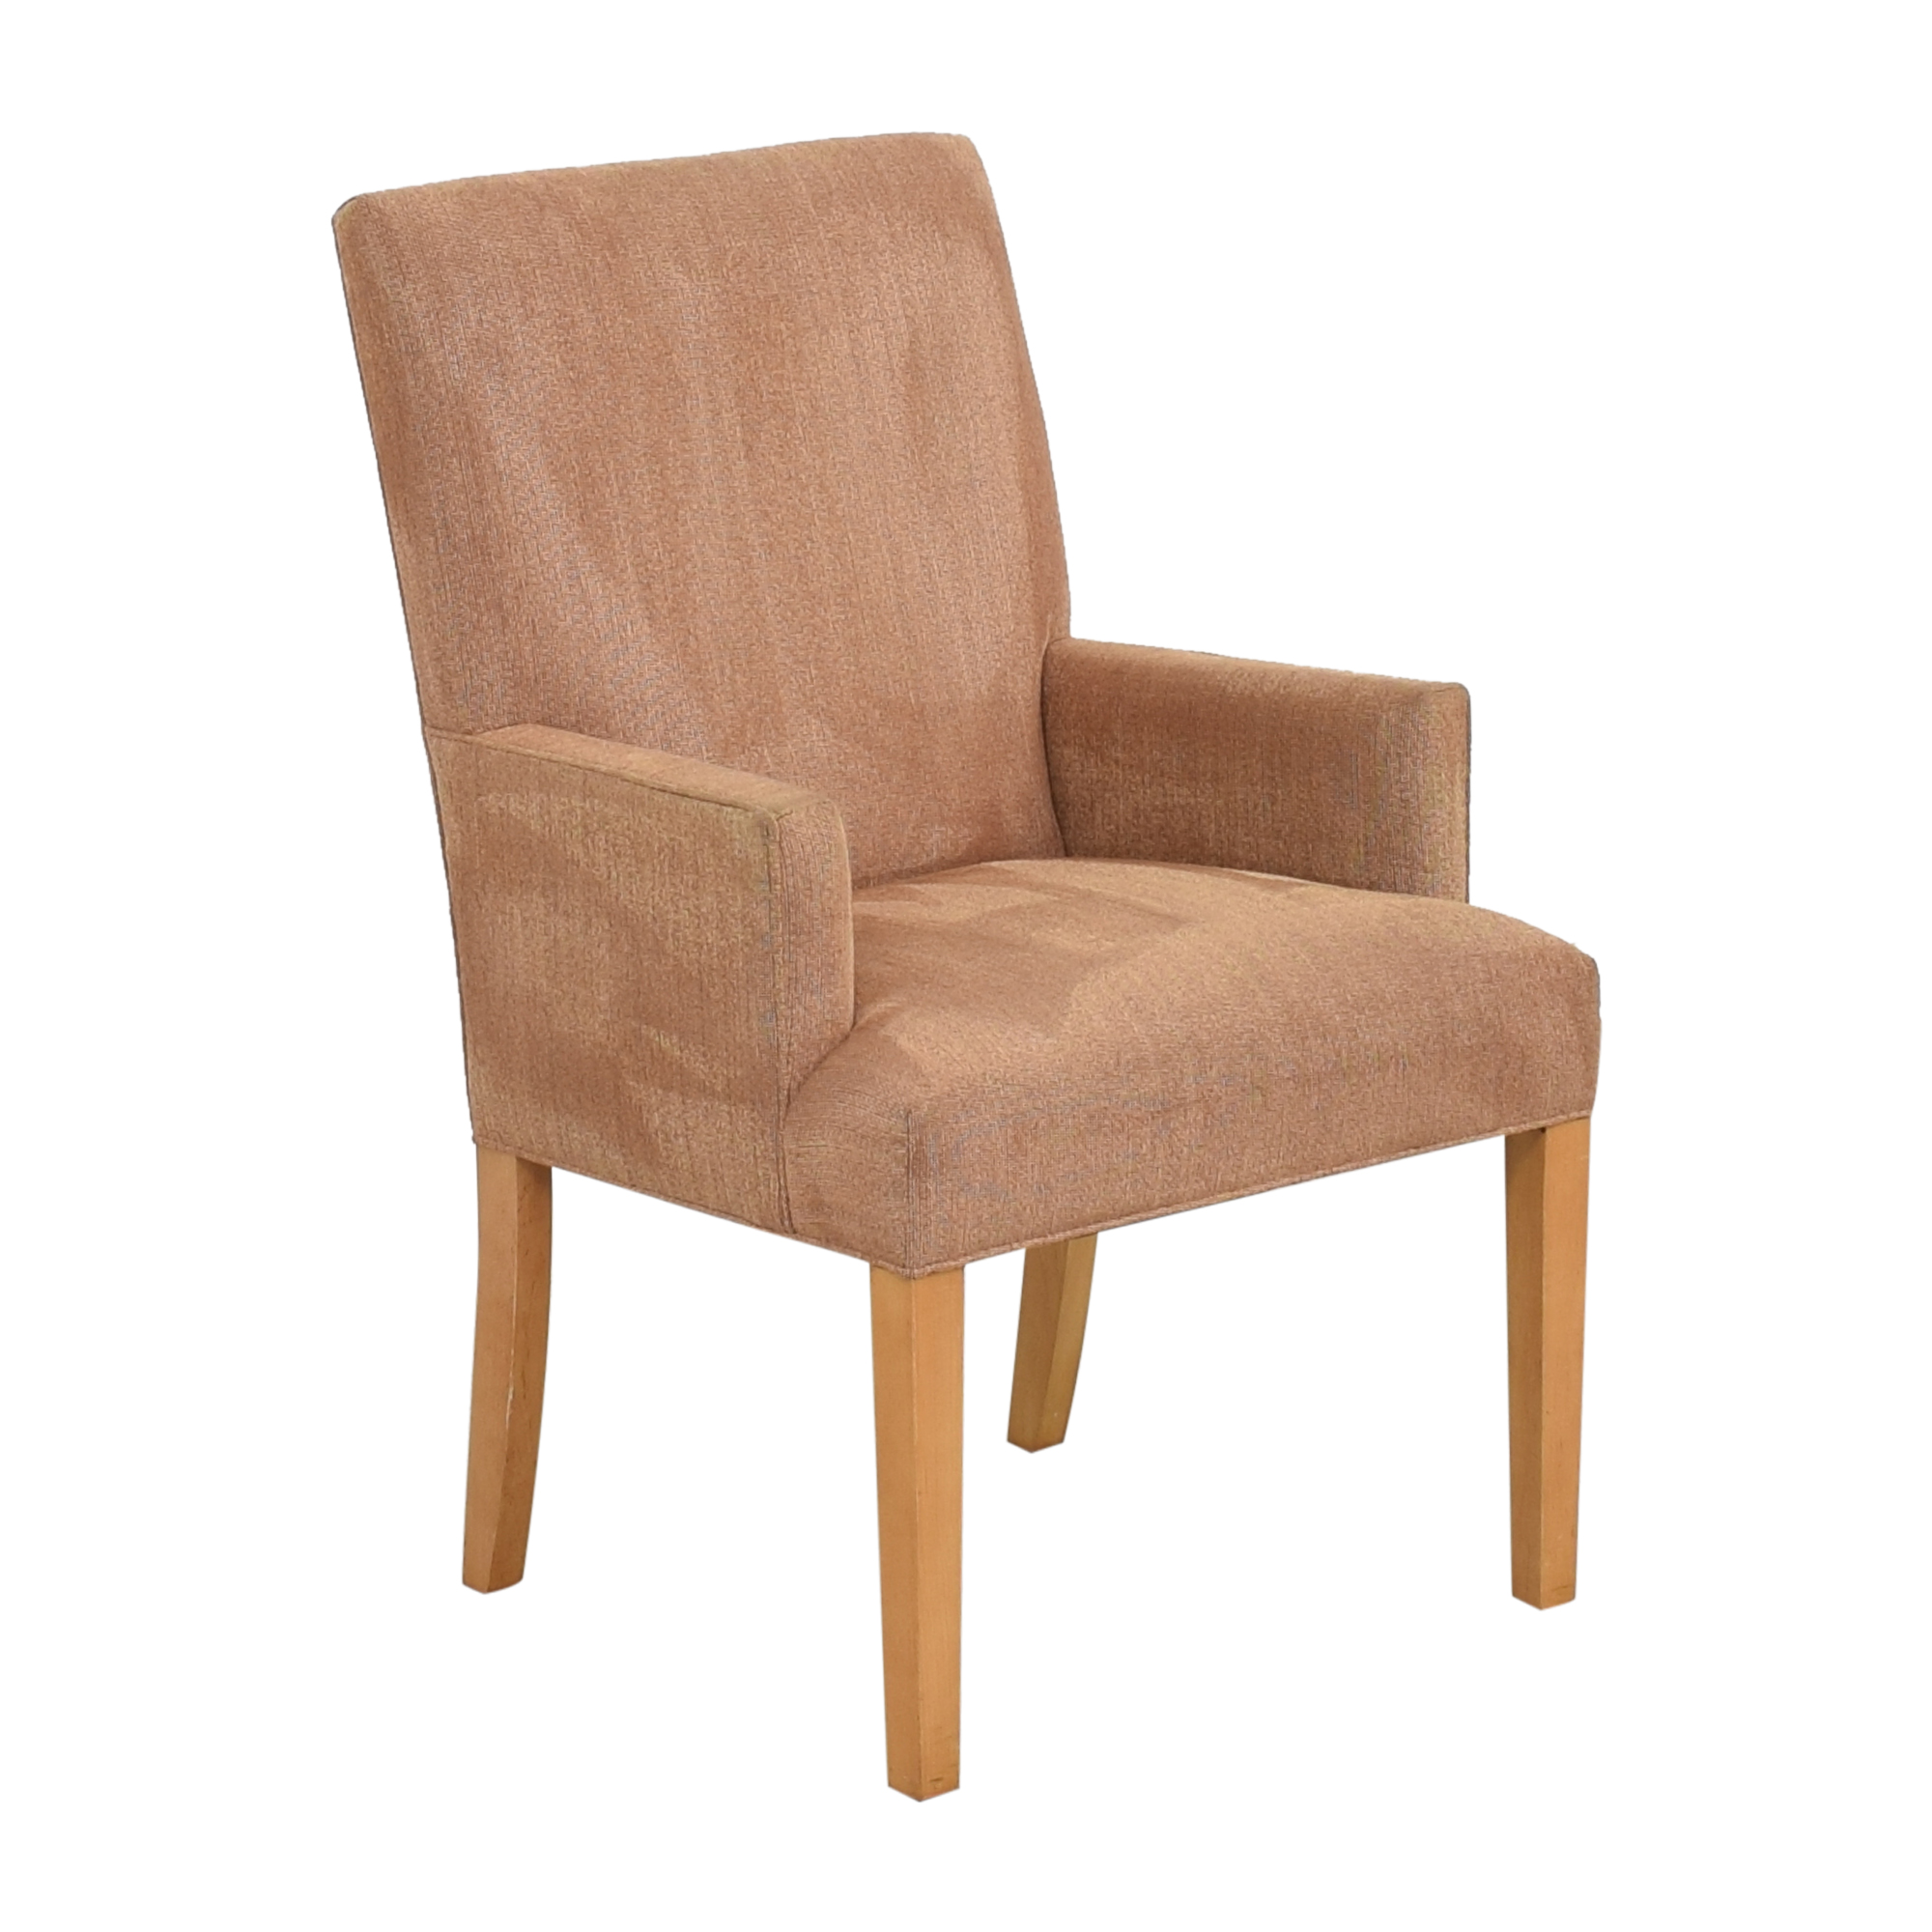 Ethan Allen Ethan Allen Thomas Armchair Accent Chairs